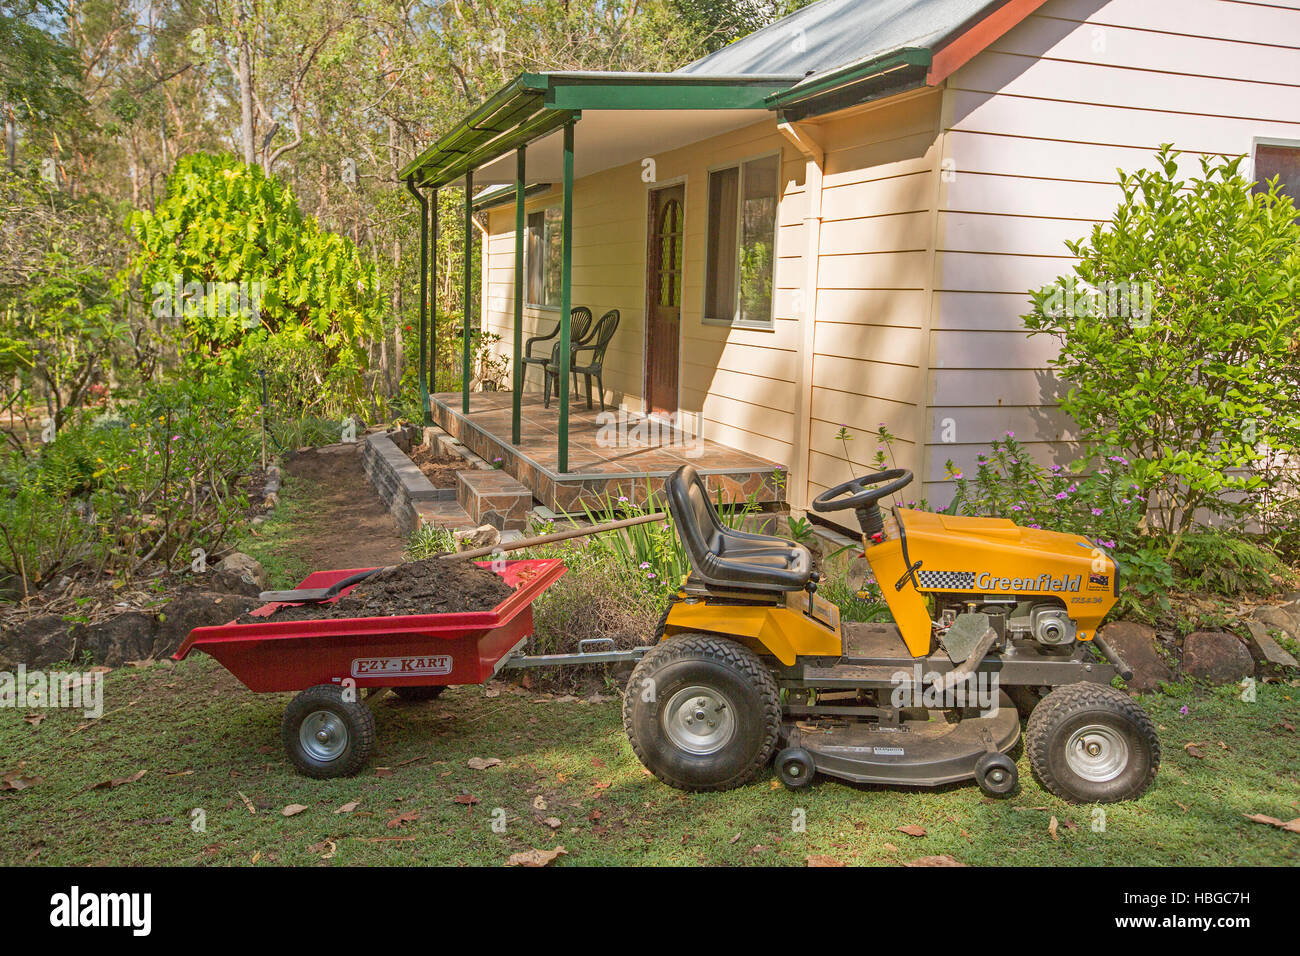 Lawn Tractor Towing : Yellow ride on mower towing small red trailer full of soil